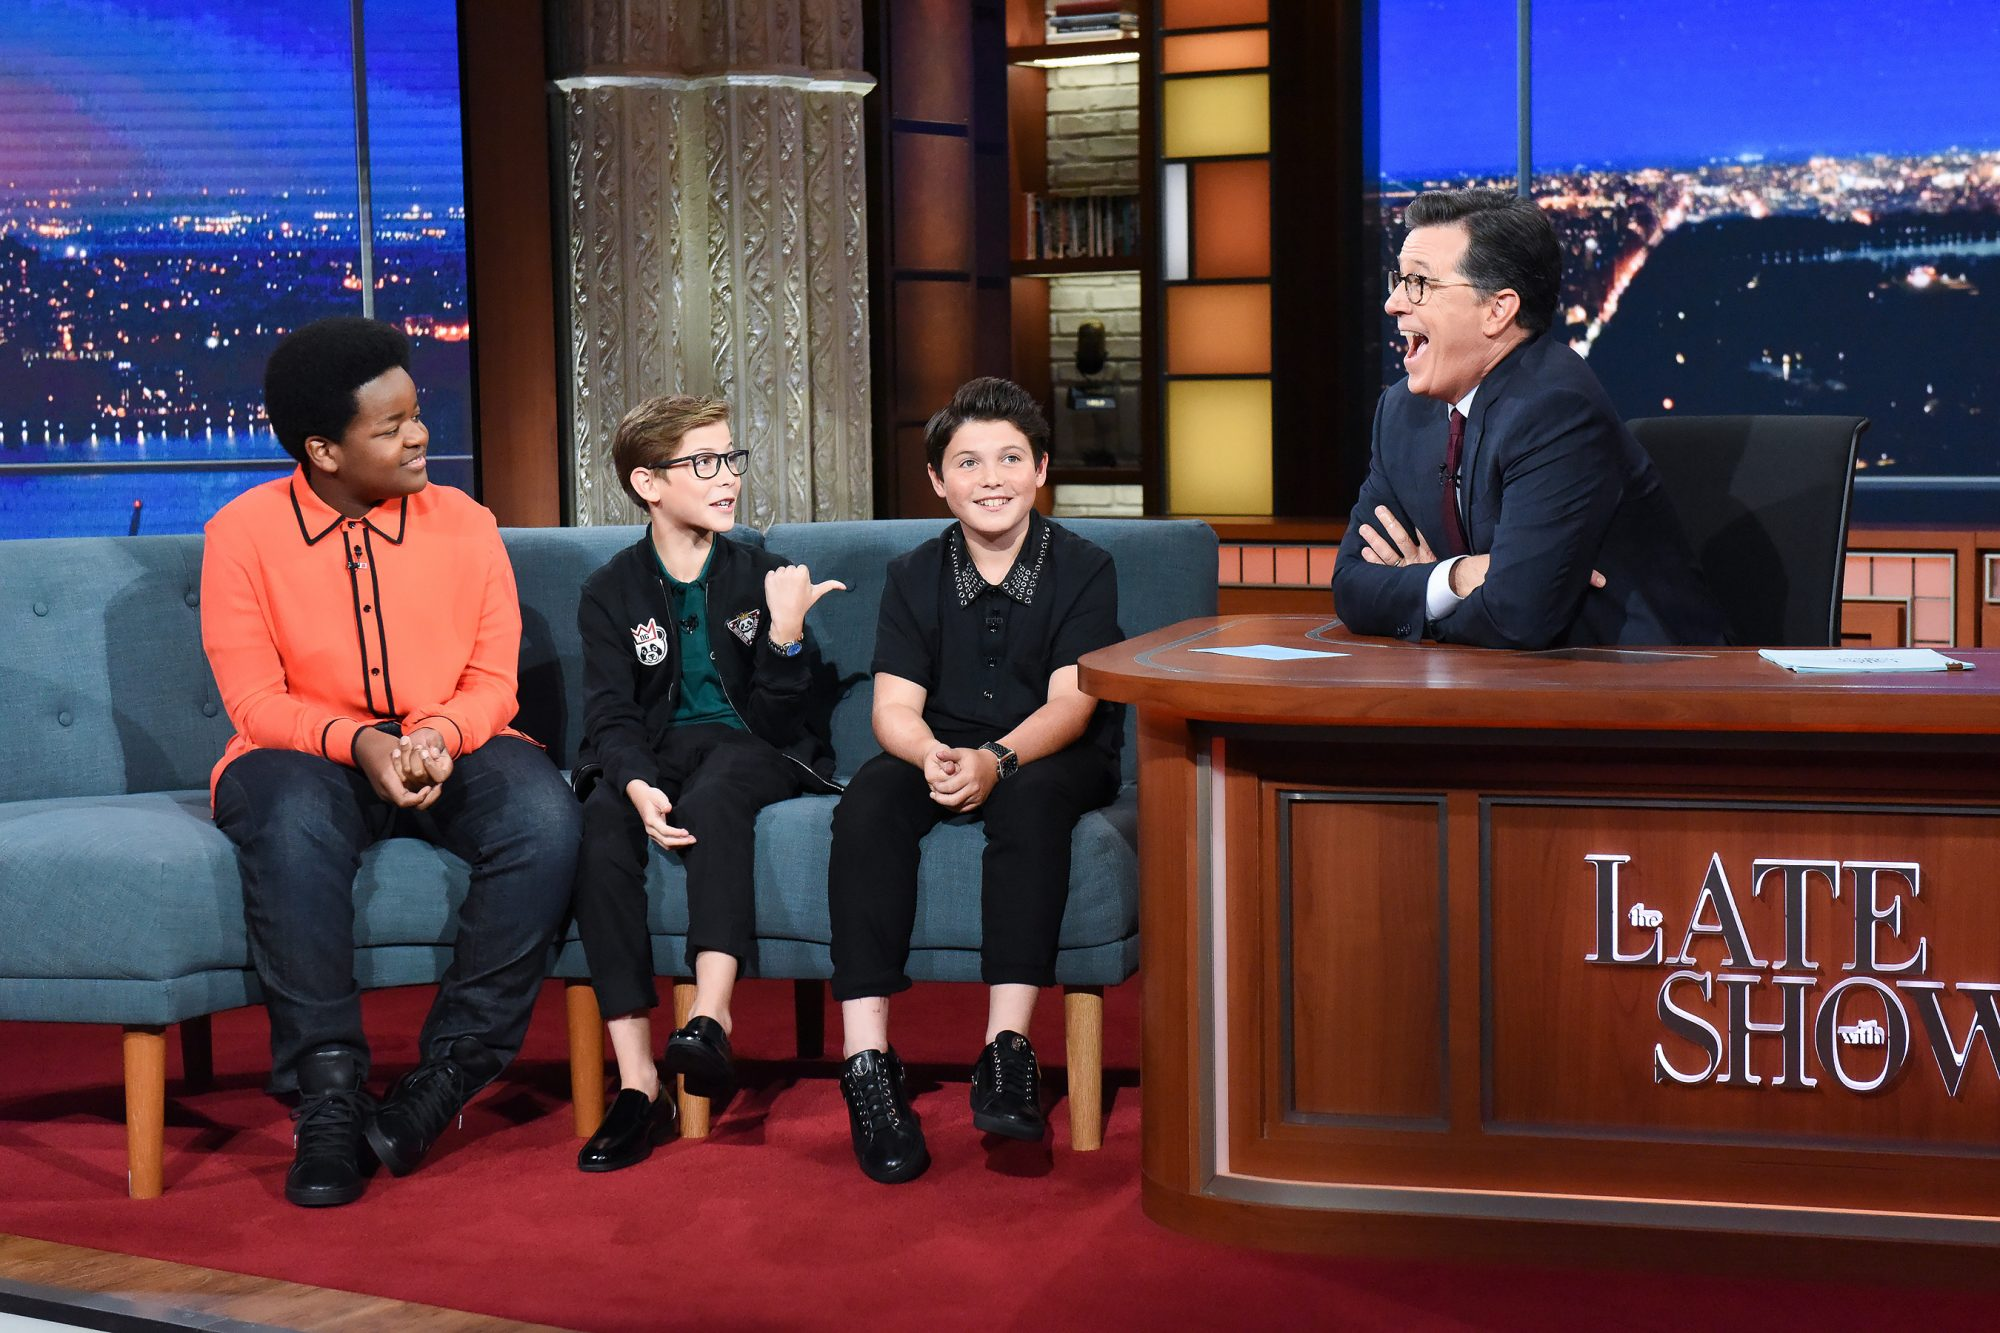 The Late Show with Stephen Colbert and guests Jacob Tremblay, Brady Noon, Keith L. Williams during Wednesday's August 6, 2019